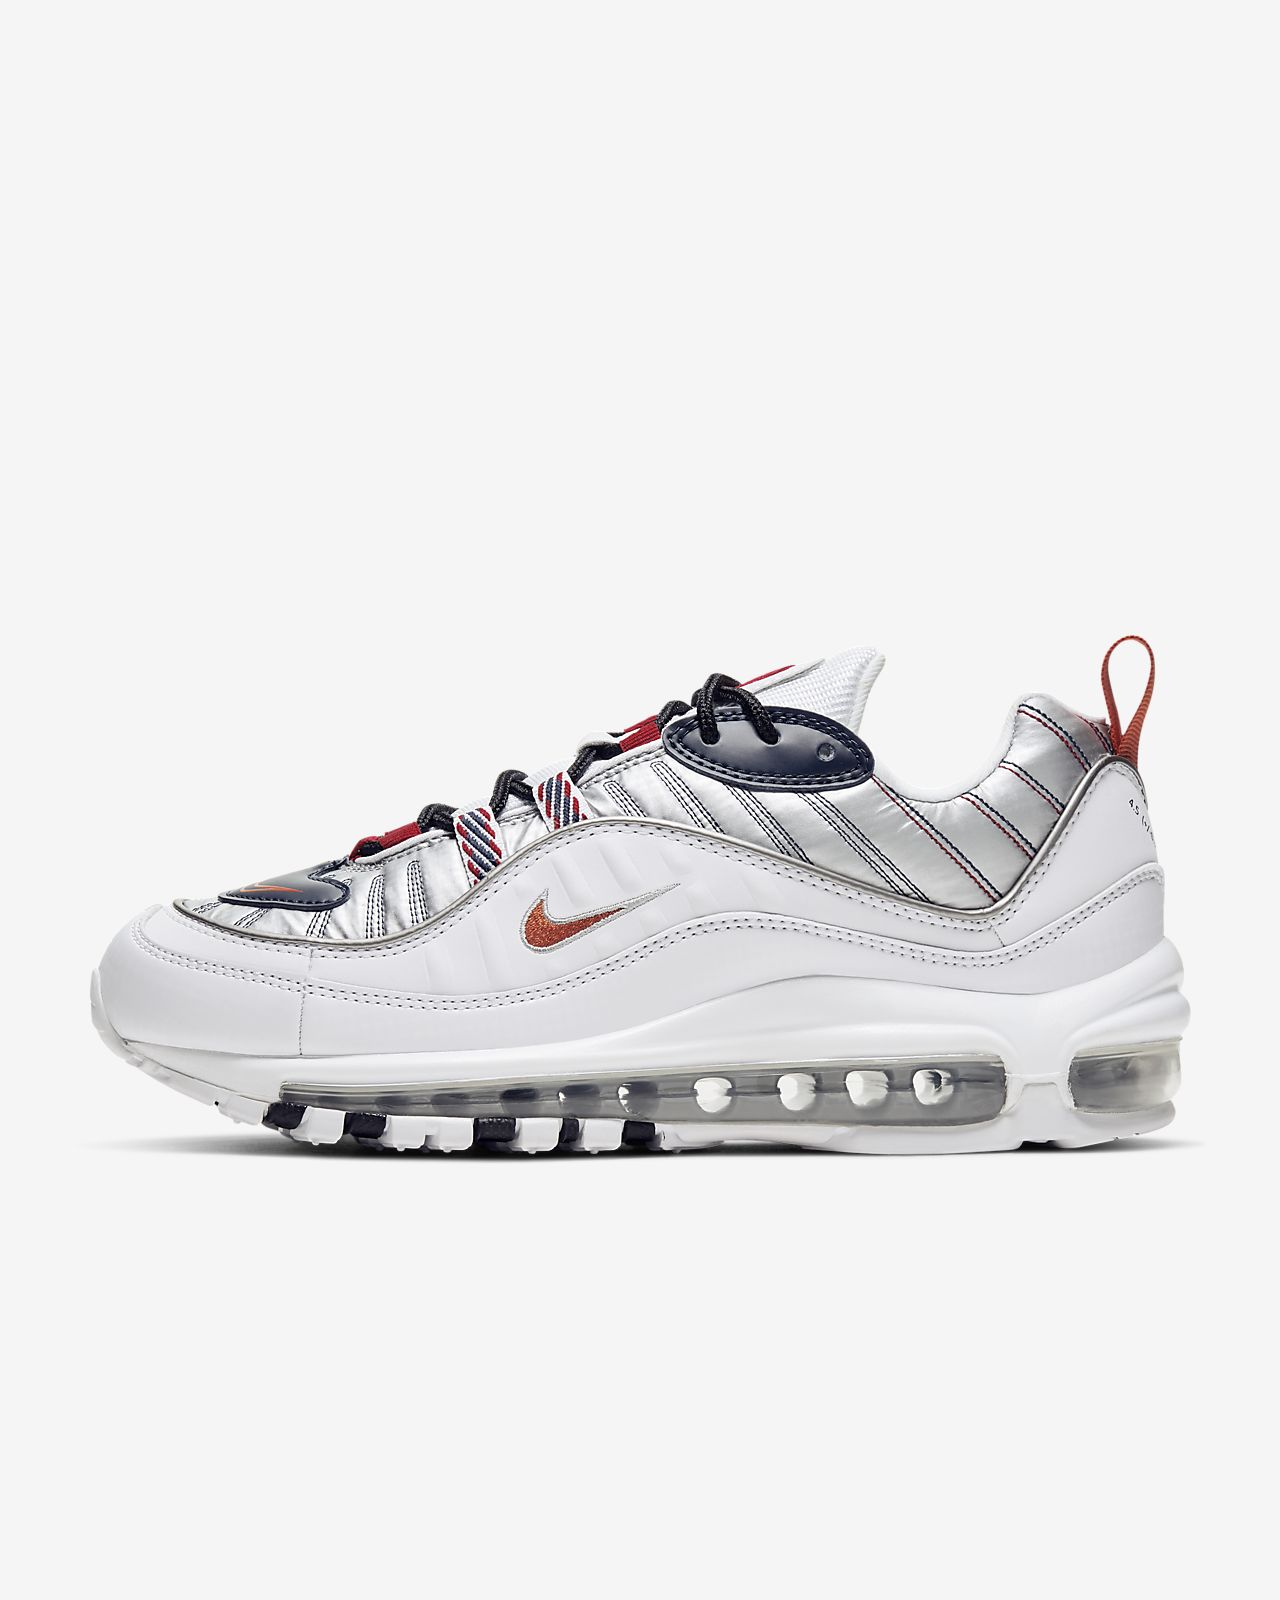 Nike Air Max 98 Leather, Suede And Mesh Sneakers | Socks